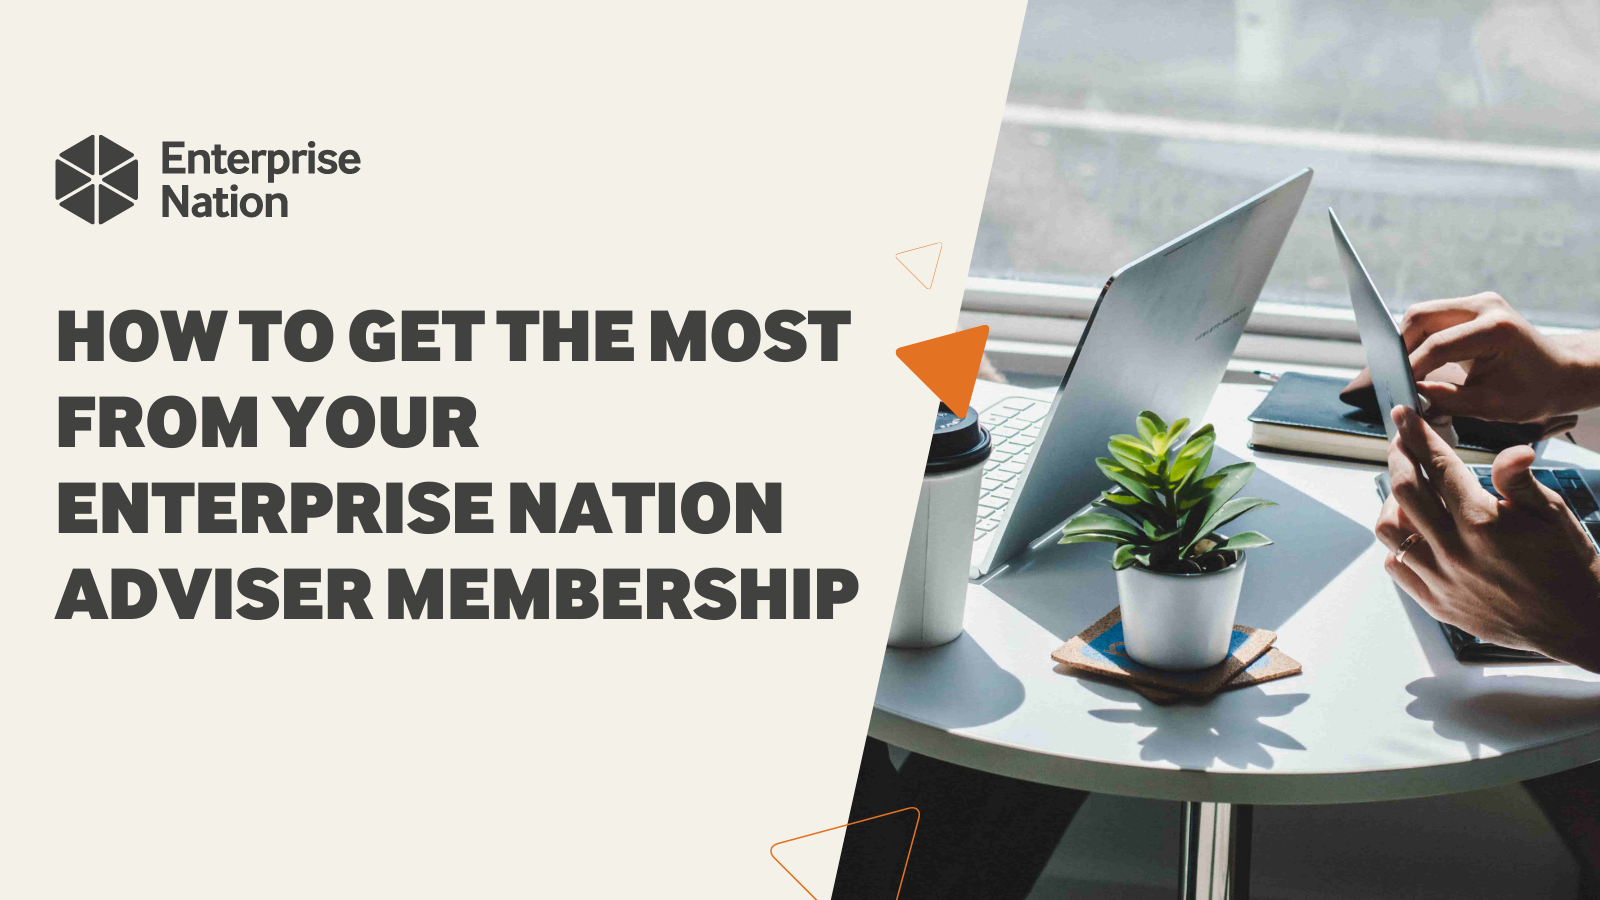 How to get the most from your Enterprise Nation adviser membership